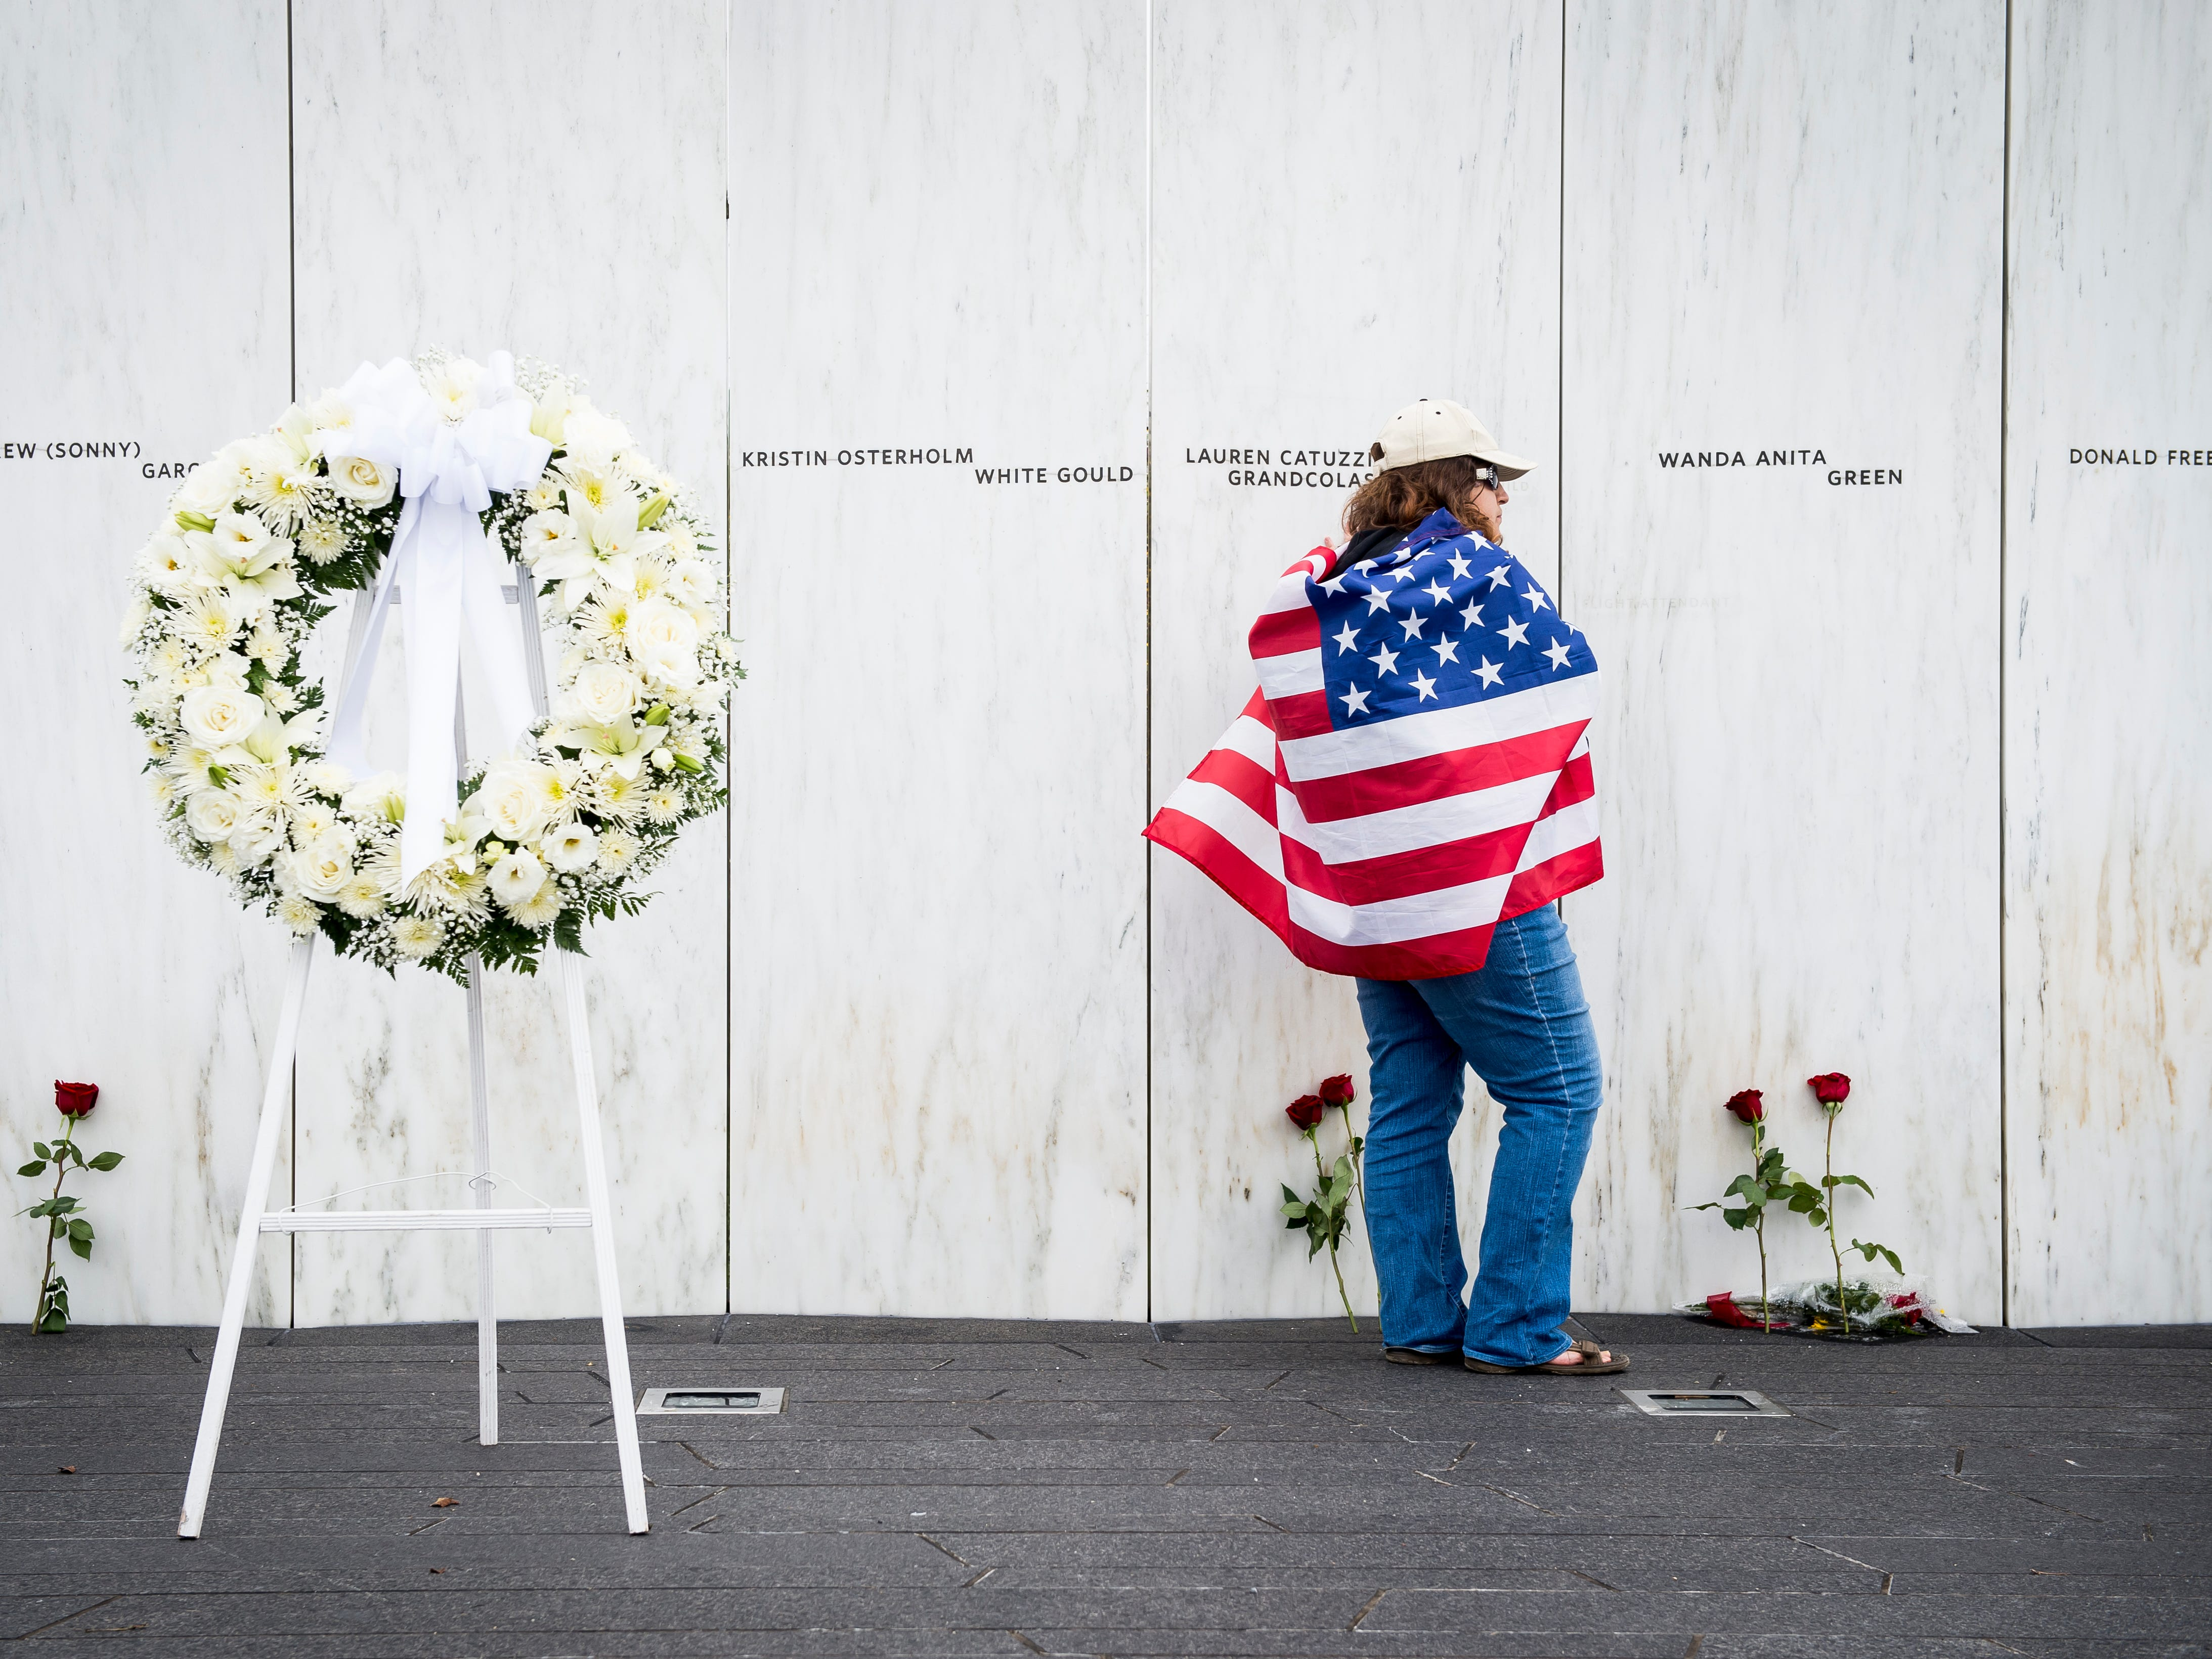 Standing at the Wall of Names Memorial, Chrissy Bortz, of Latrobe, Pa., stops and touches each of the 40 names of the victims who were killed in the Flight 93 crash in Shanksville, Pa., Tuesday, September 11, 2018.